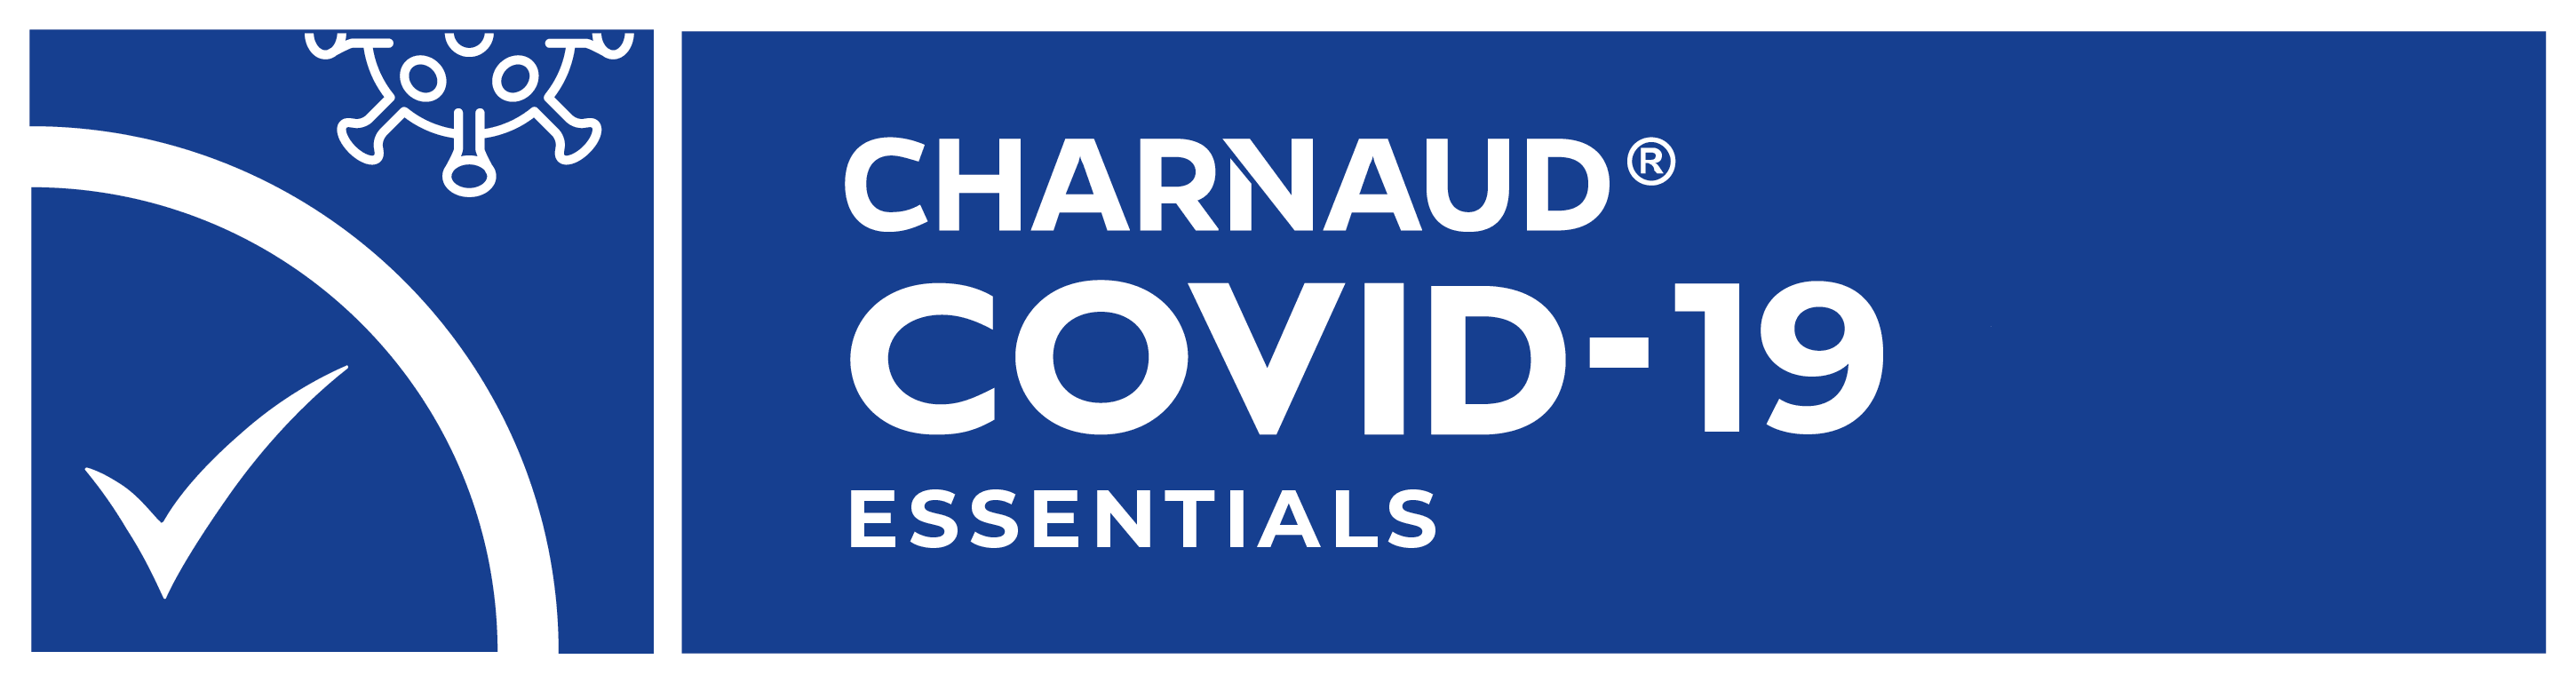 COVID-19 ESSENTIALS